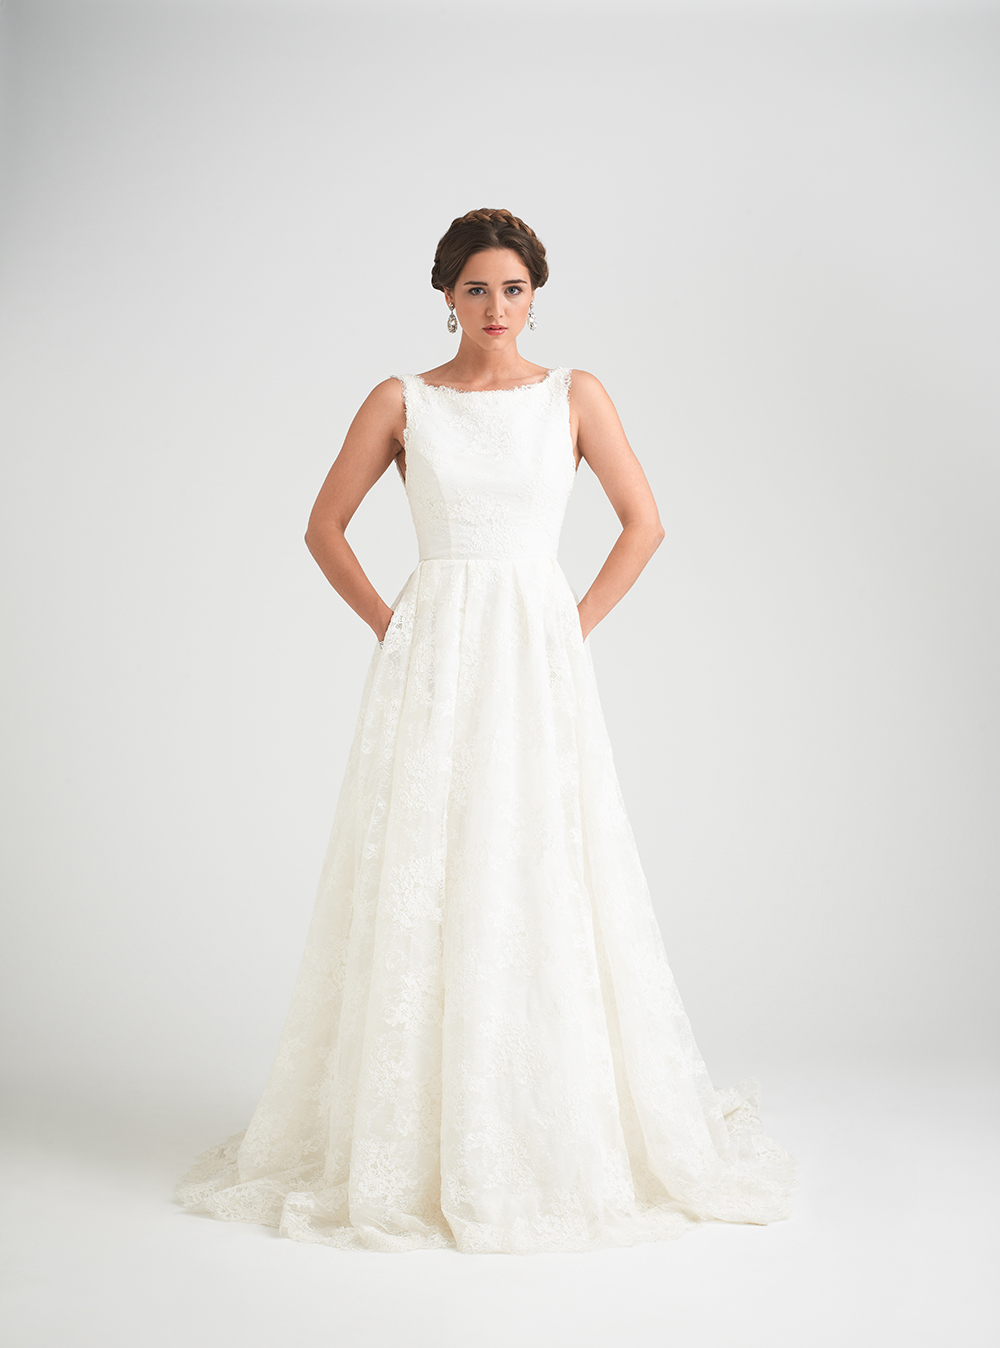 Lace Wedding Dress Trends and Styles | Caroline Castigliano